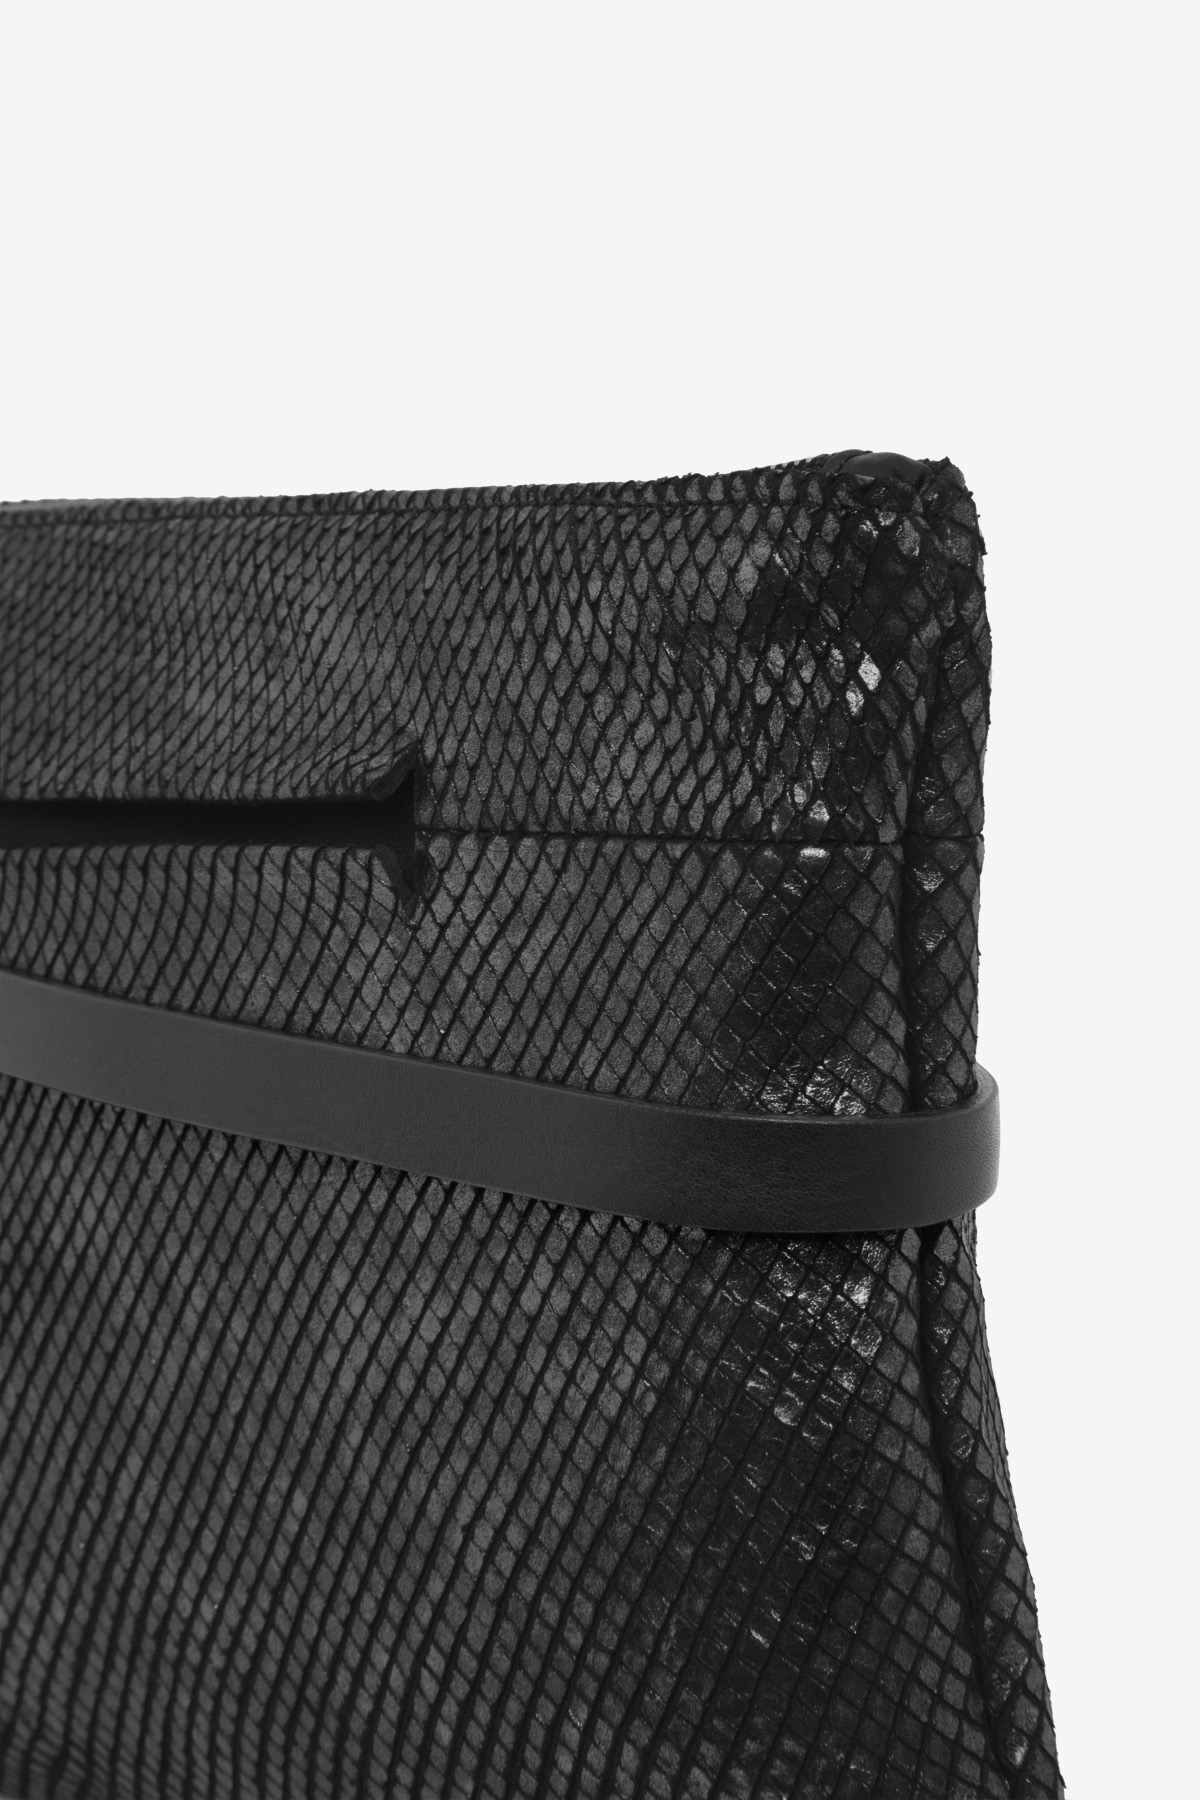 dclr004l-tapeclutch-a23-backsnakeblack-detail